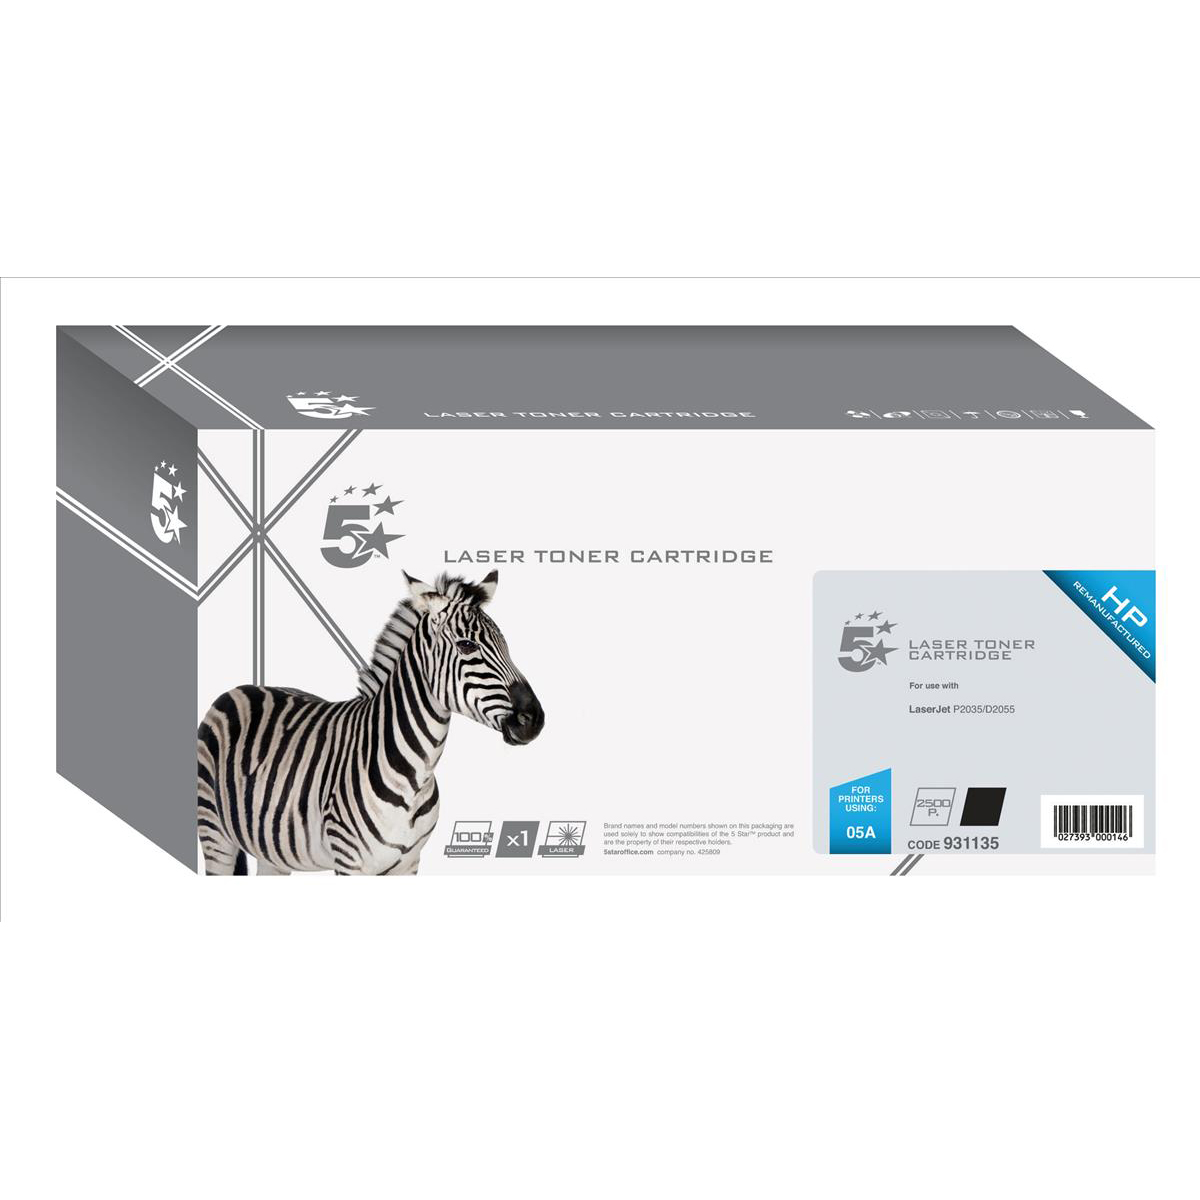 5 Star Office Remanufactured Laser Toner Cartridge 2300pp Black [HP 05A CE505A Alternative]